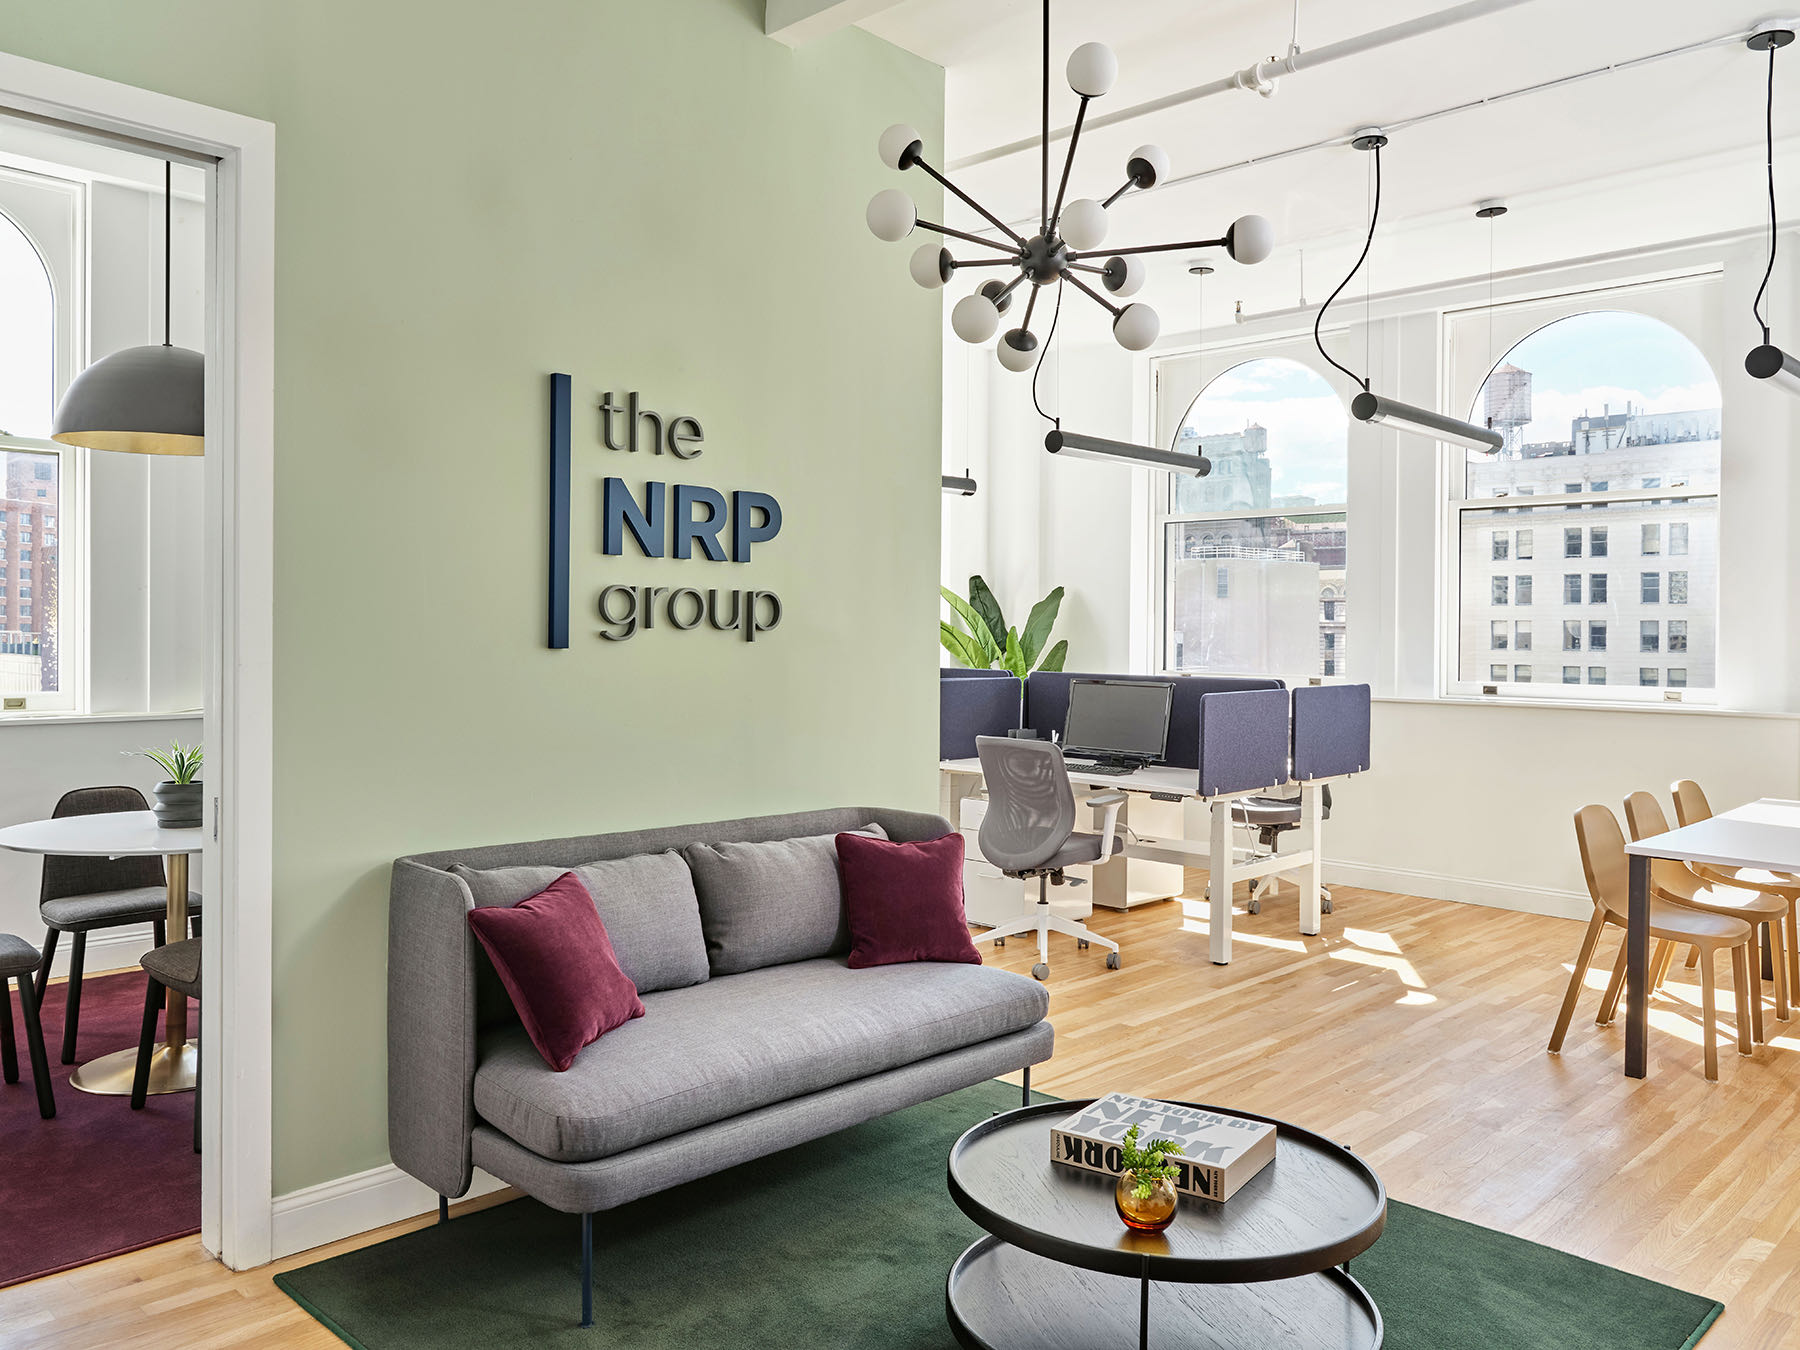 nrp-group-office-8